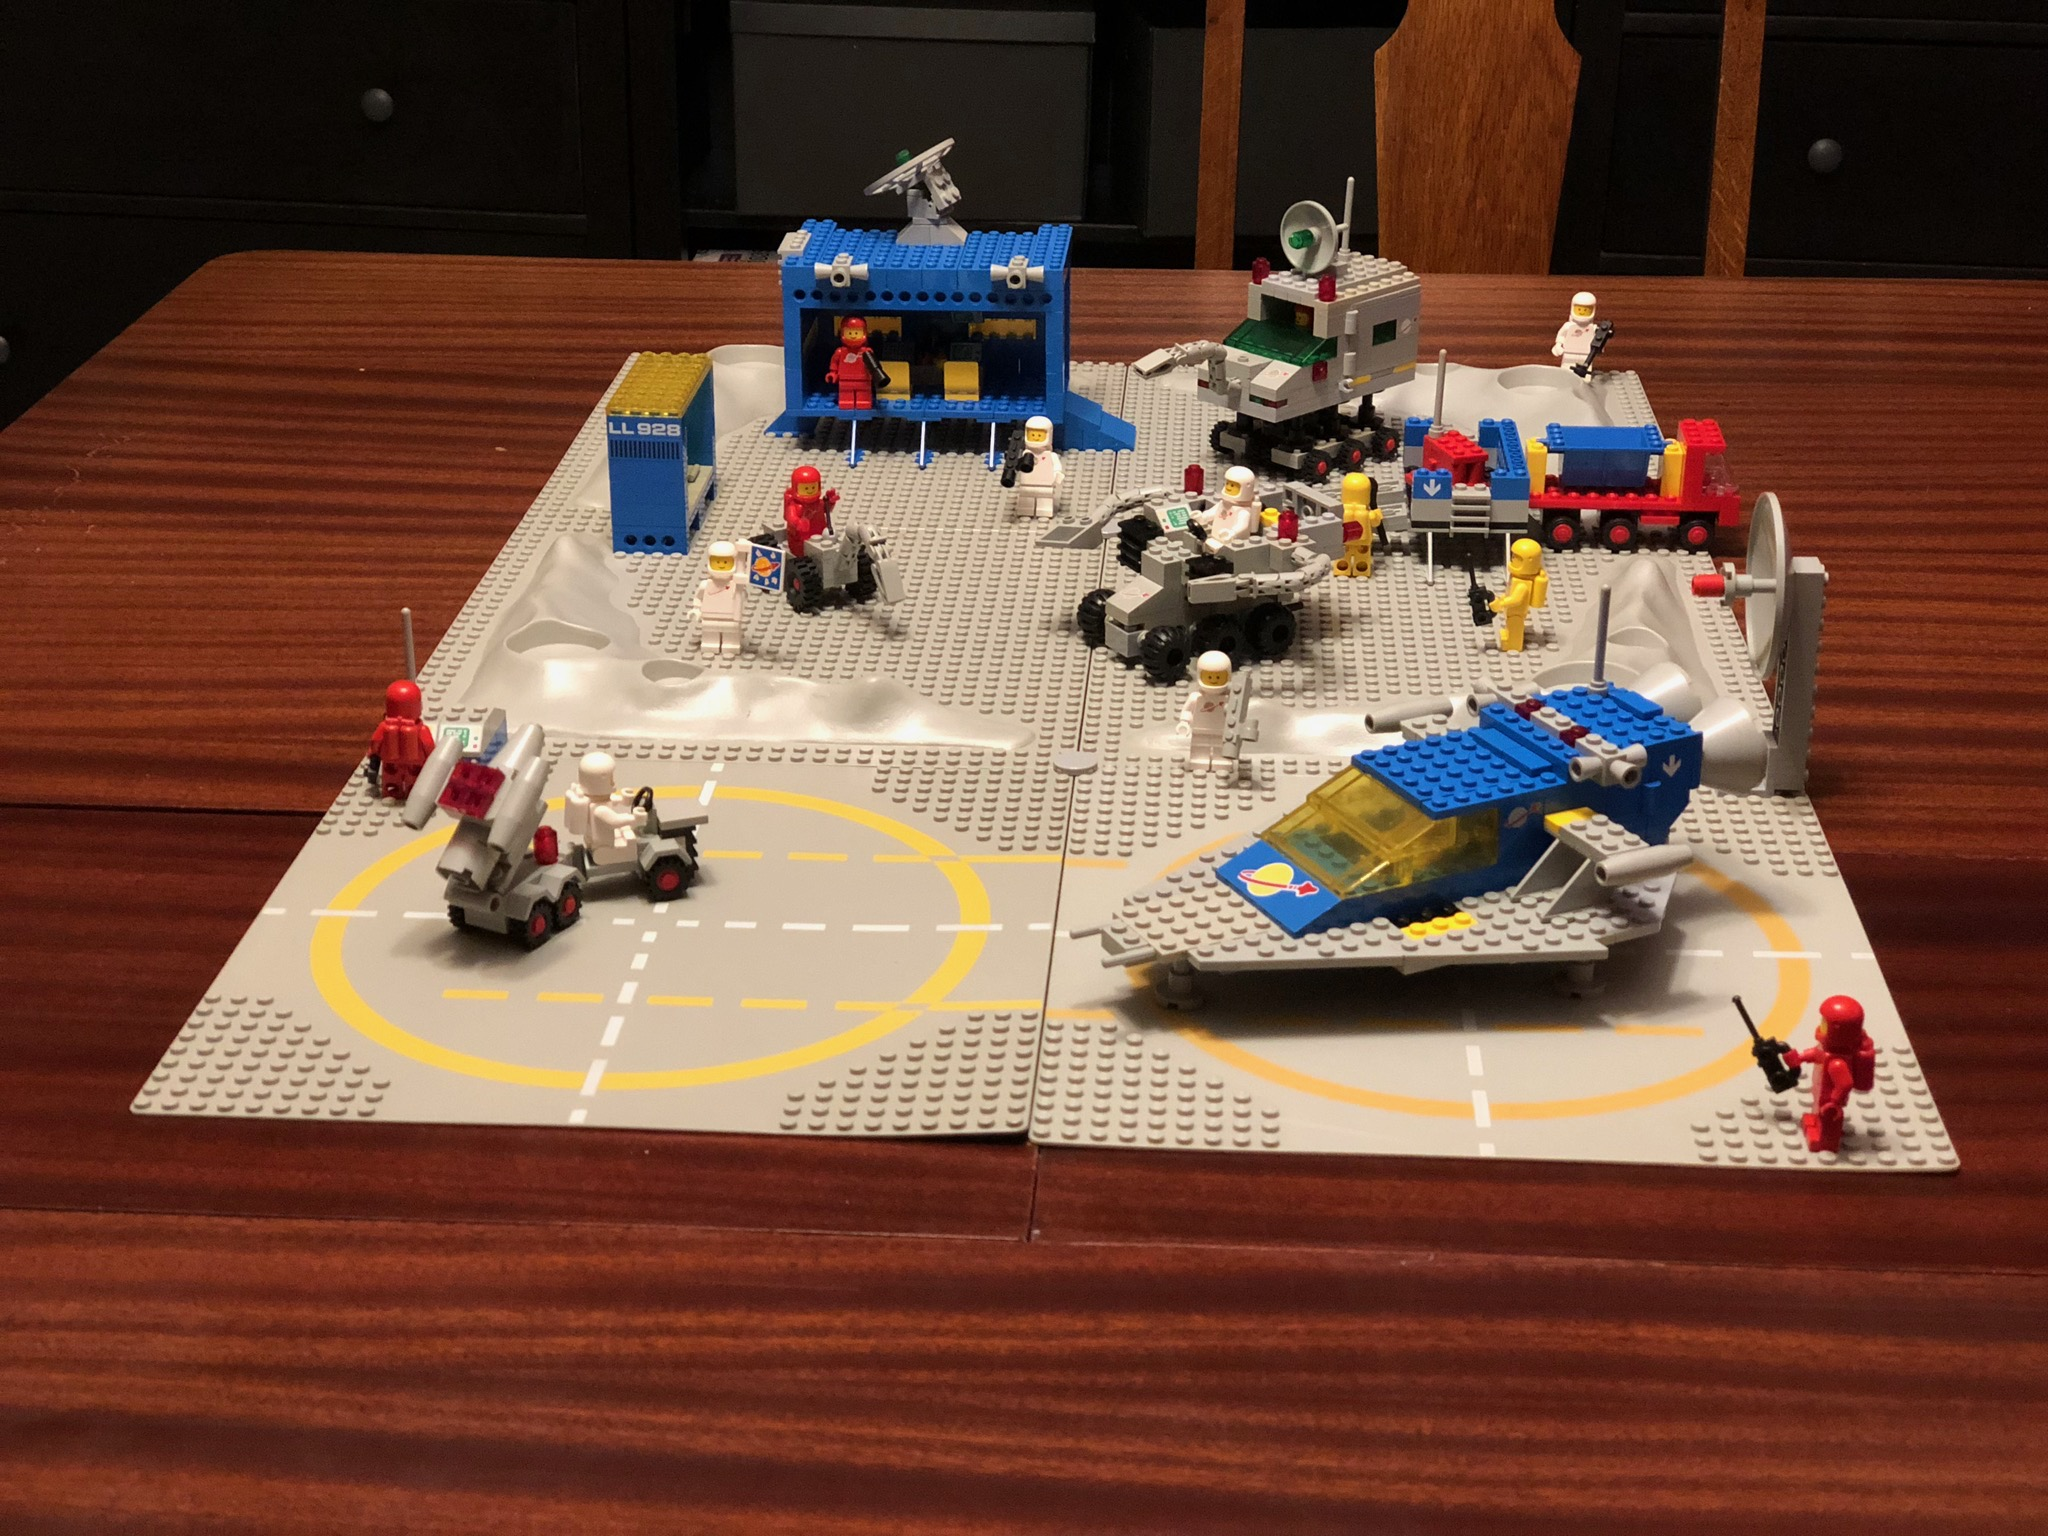 A collection of vintage space lego sets sitting on four grey lego boards, atop a dining table